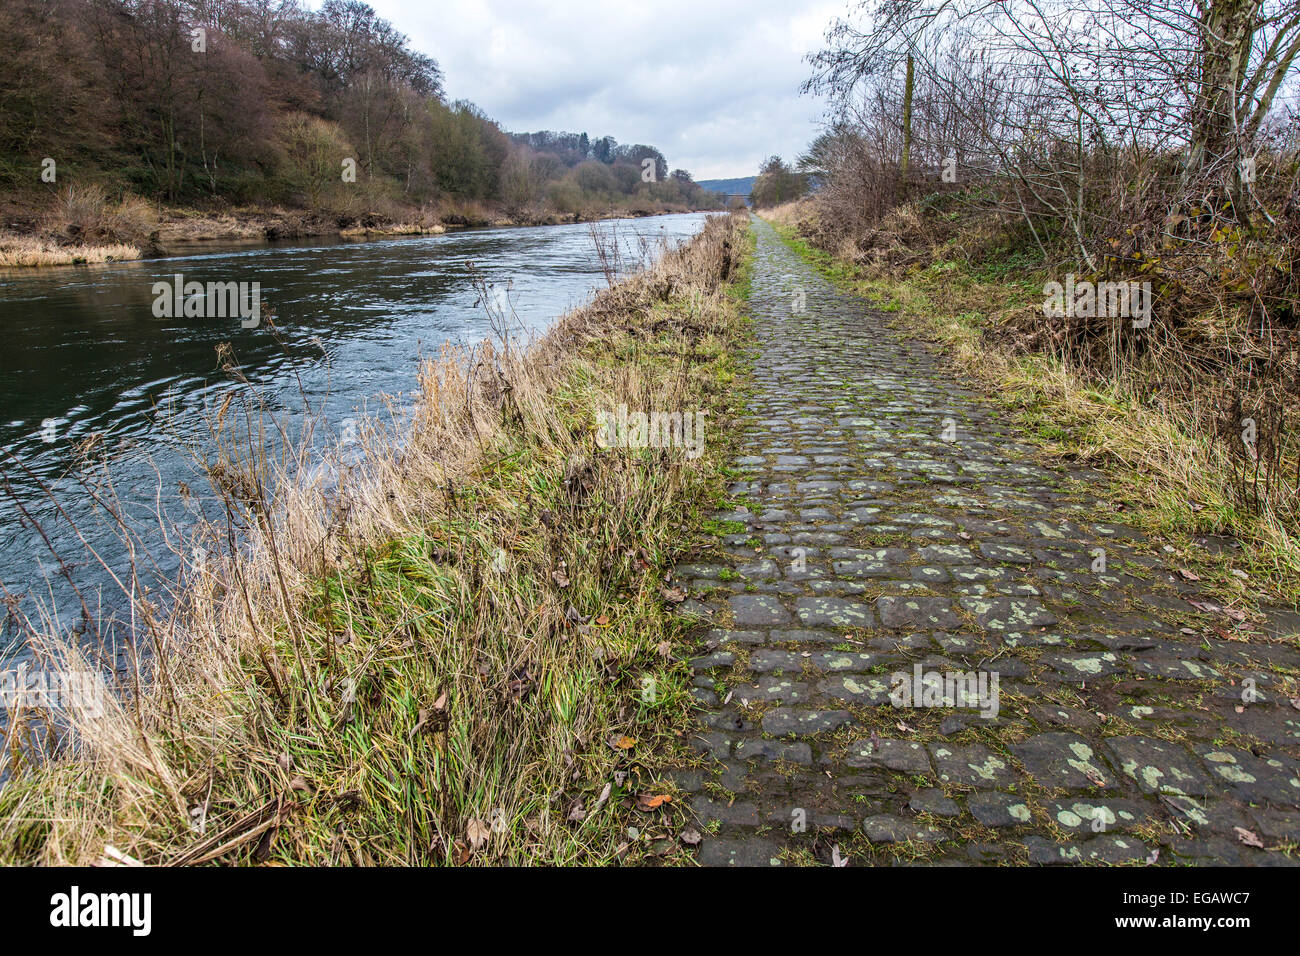 Historic towpath, along river Ruhr, hundred years ago, horses tow cargo lighter up and down the river - Stock Image